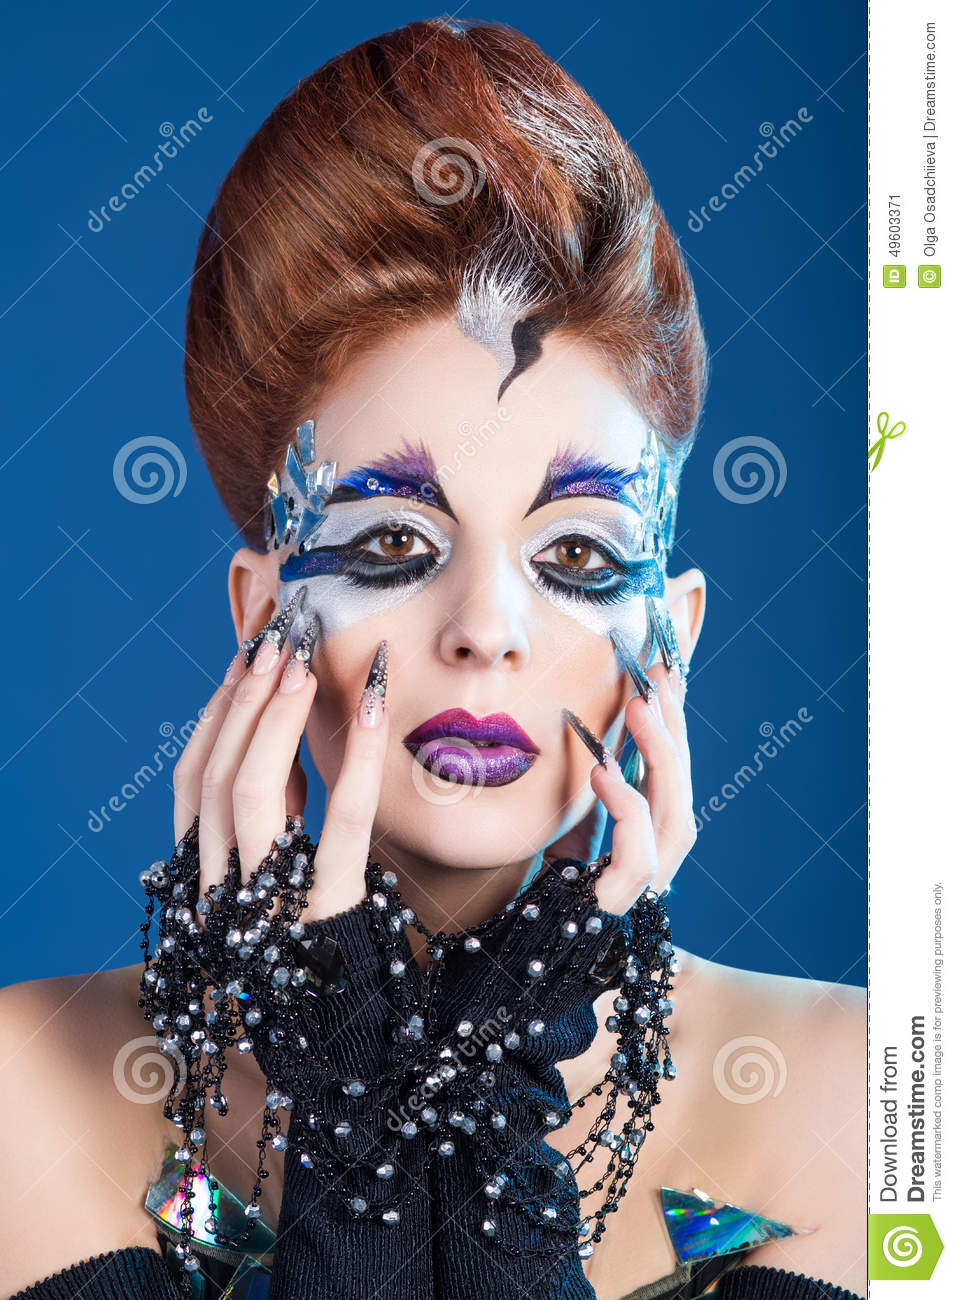 Make up art, long nails, new idea